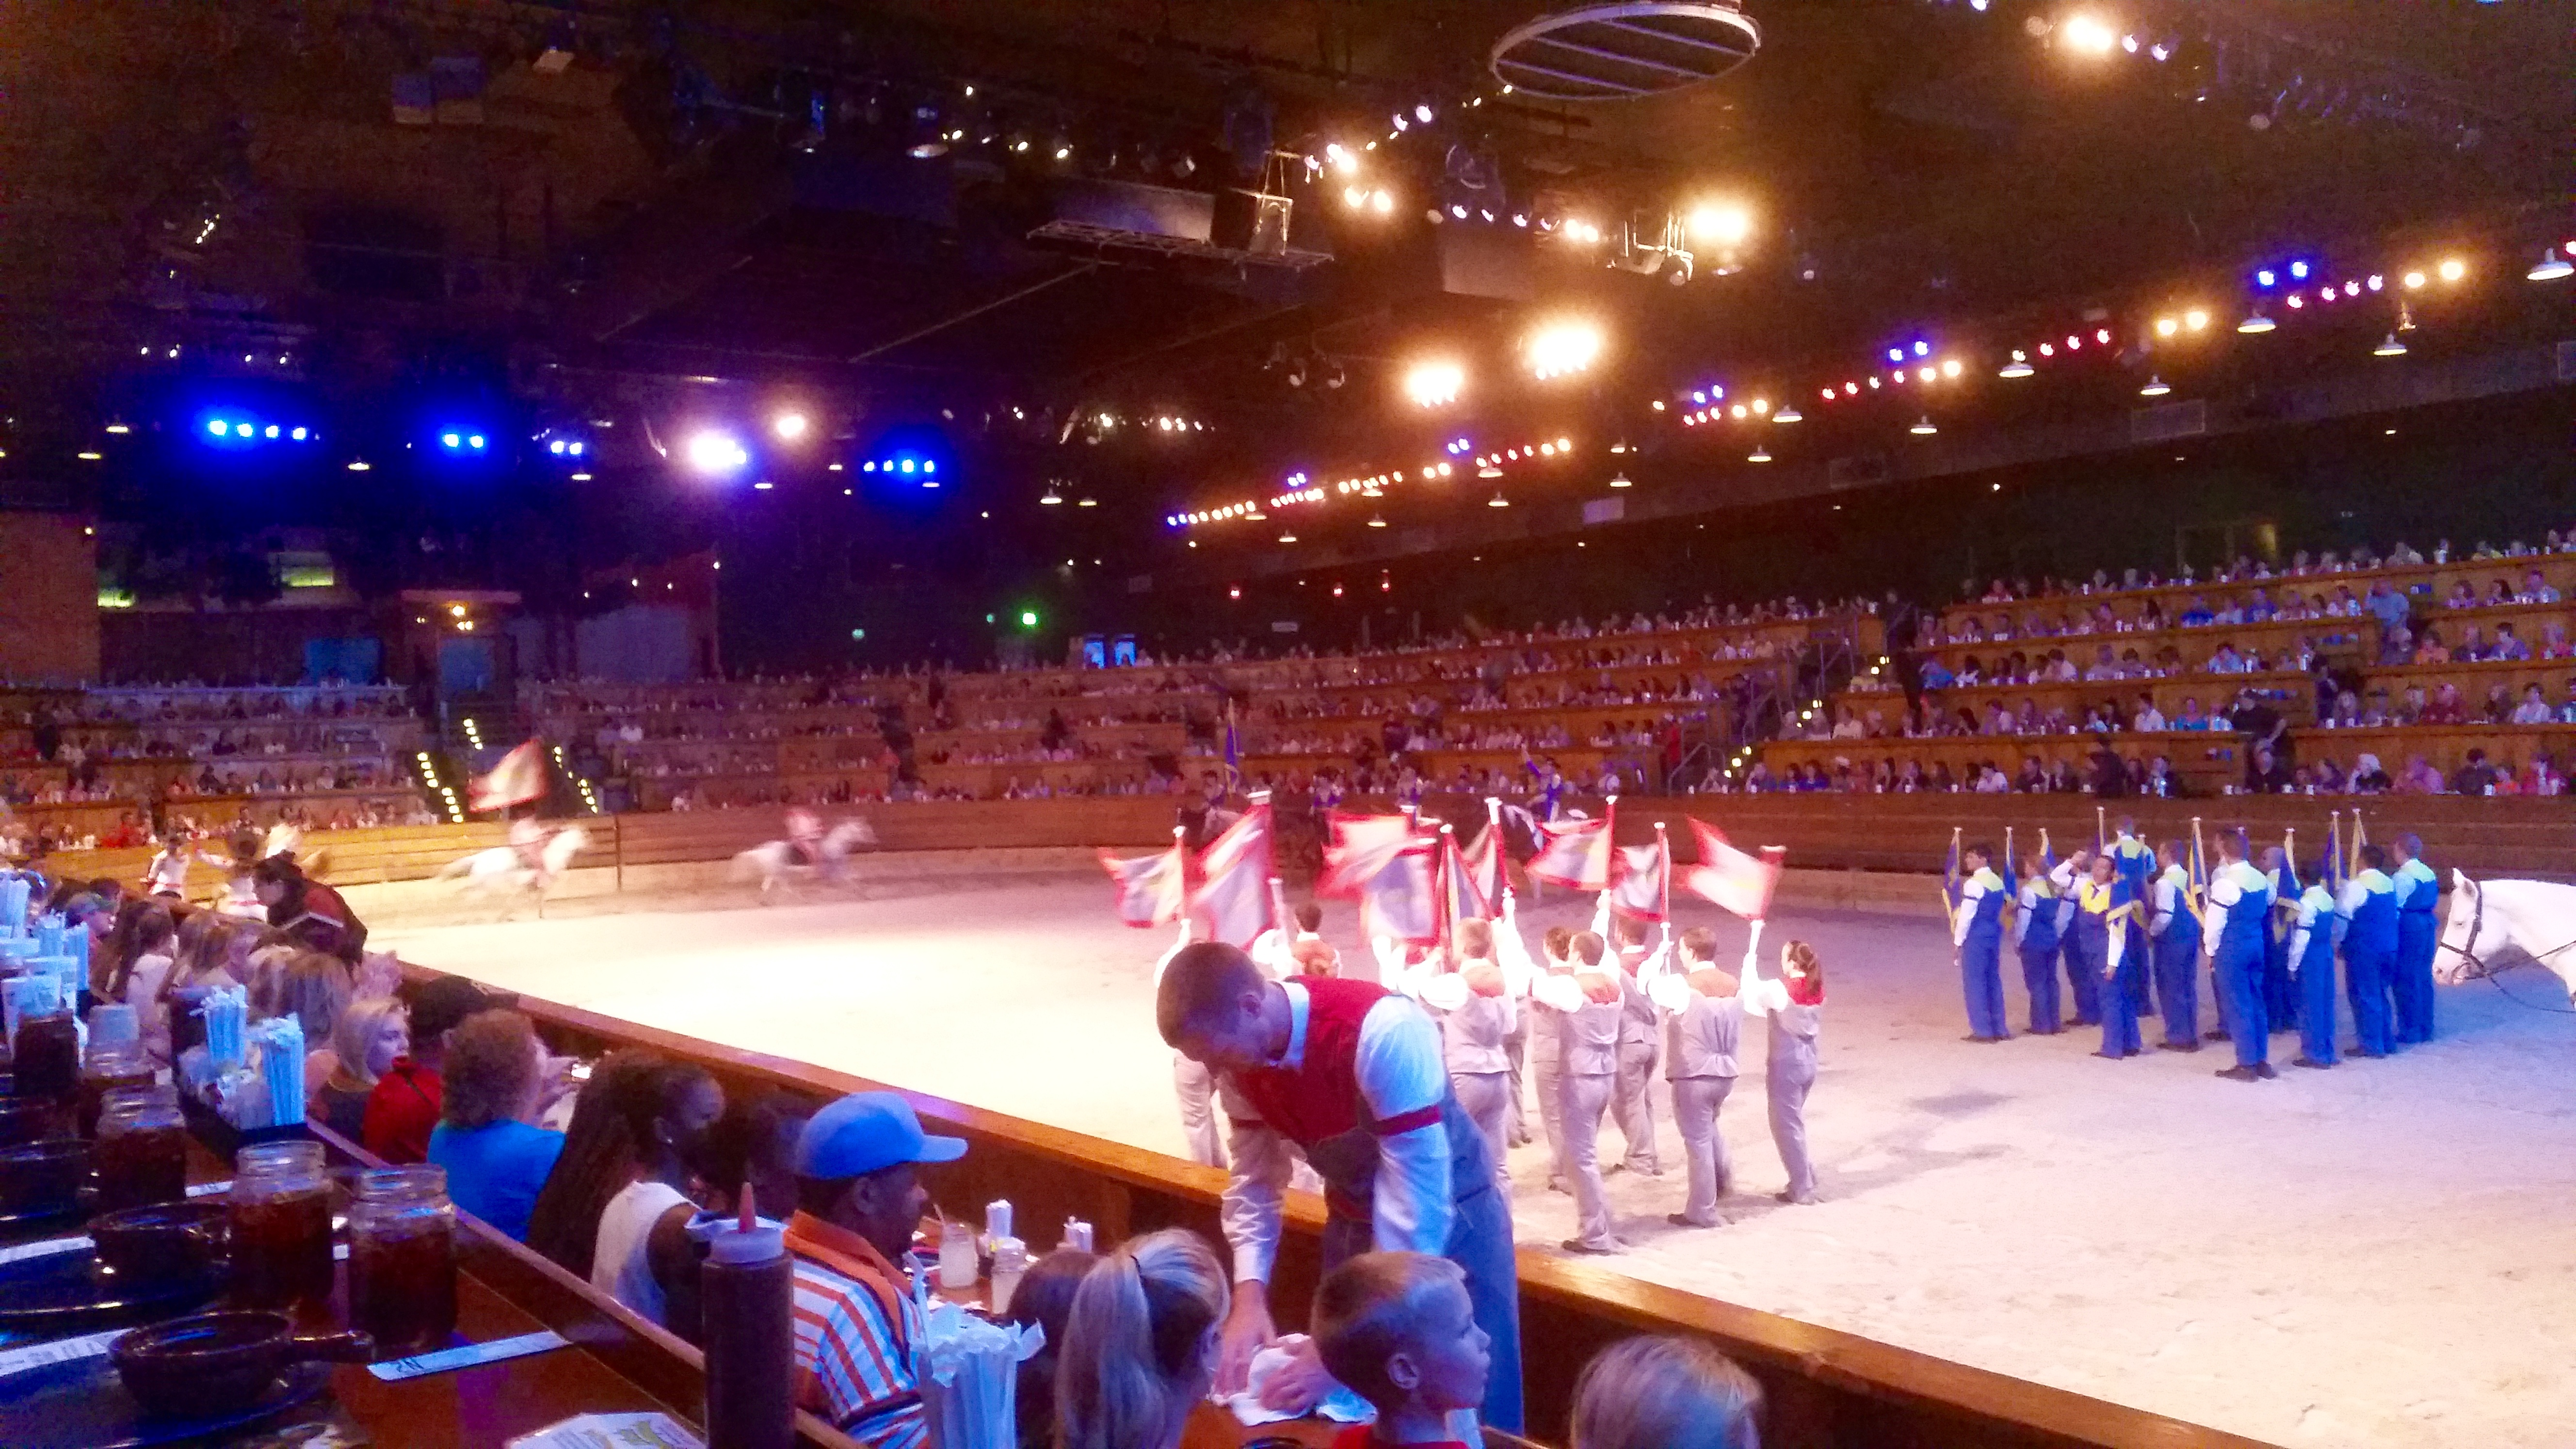 At Dixie Stampede